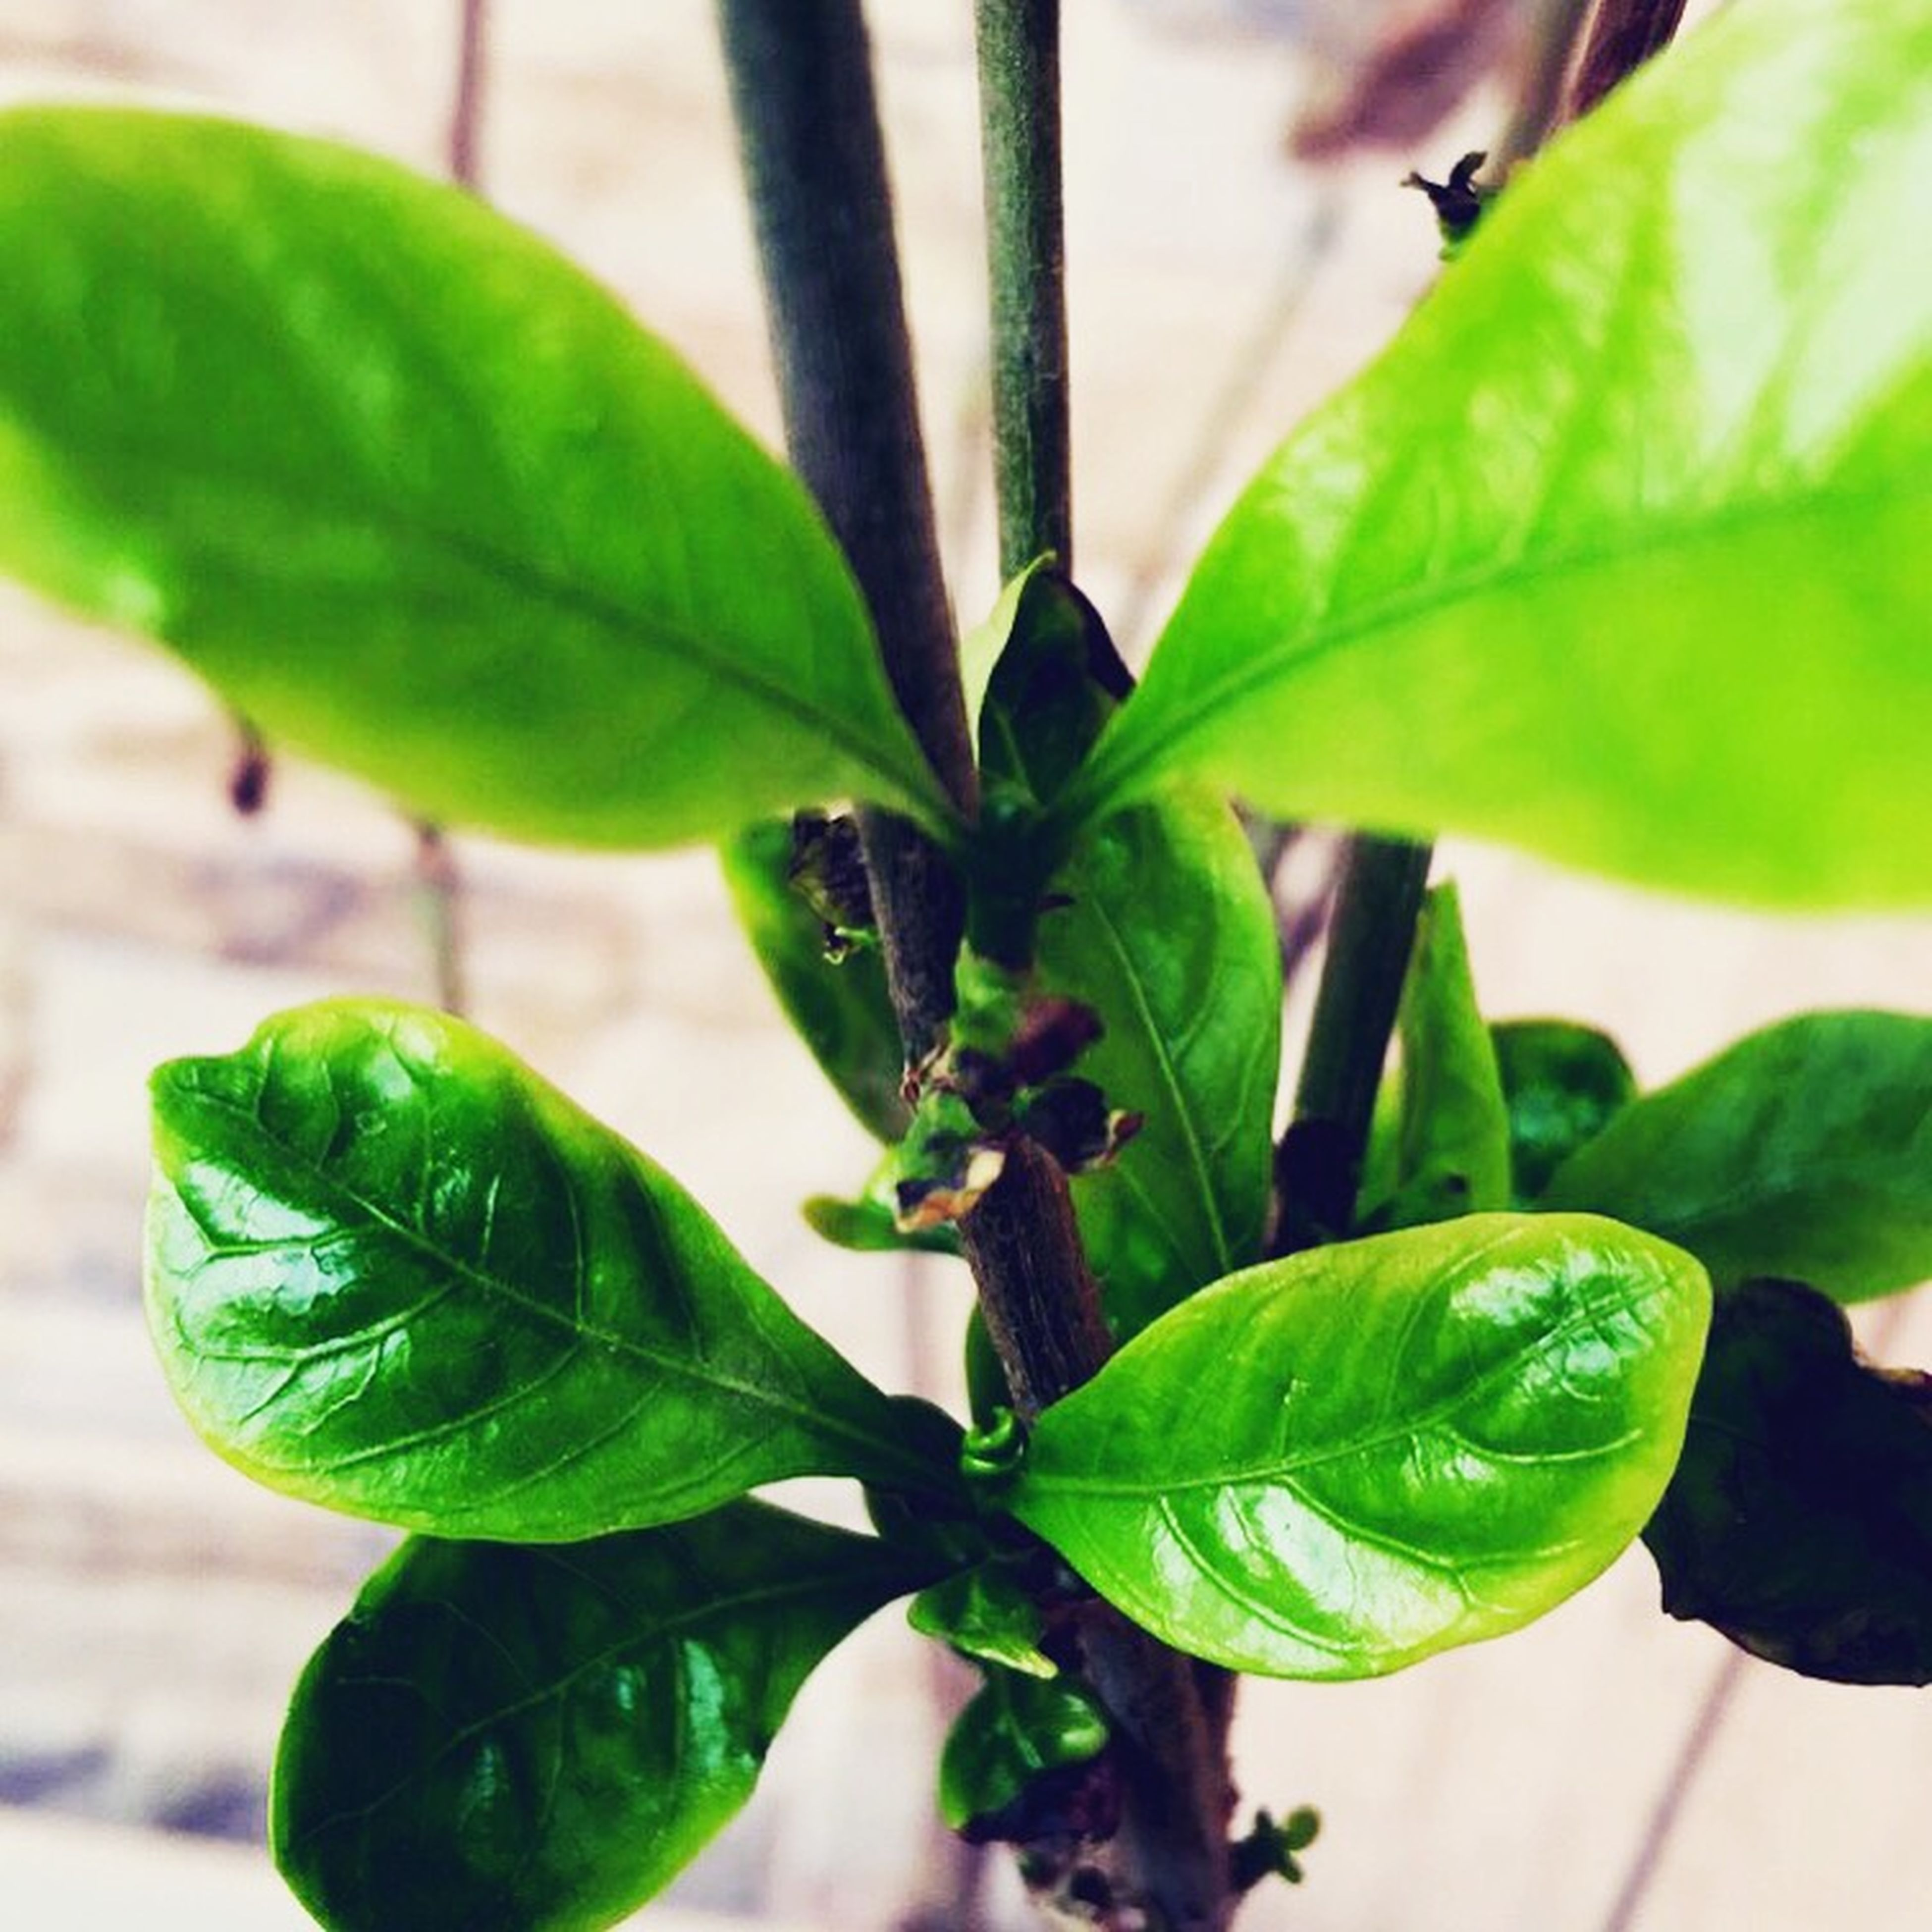 leaf, green color, plant, close-up, leaf vein, growth, focus on foreground, nature, freshness, green, beginnings, insect, leaves, selective focus, day, new life, outdoors, beauty in nature, stem, high angle view